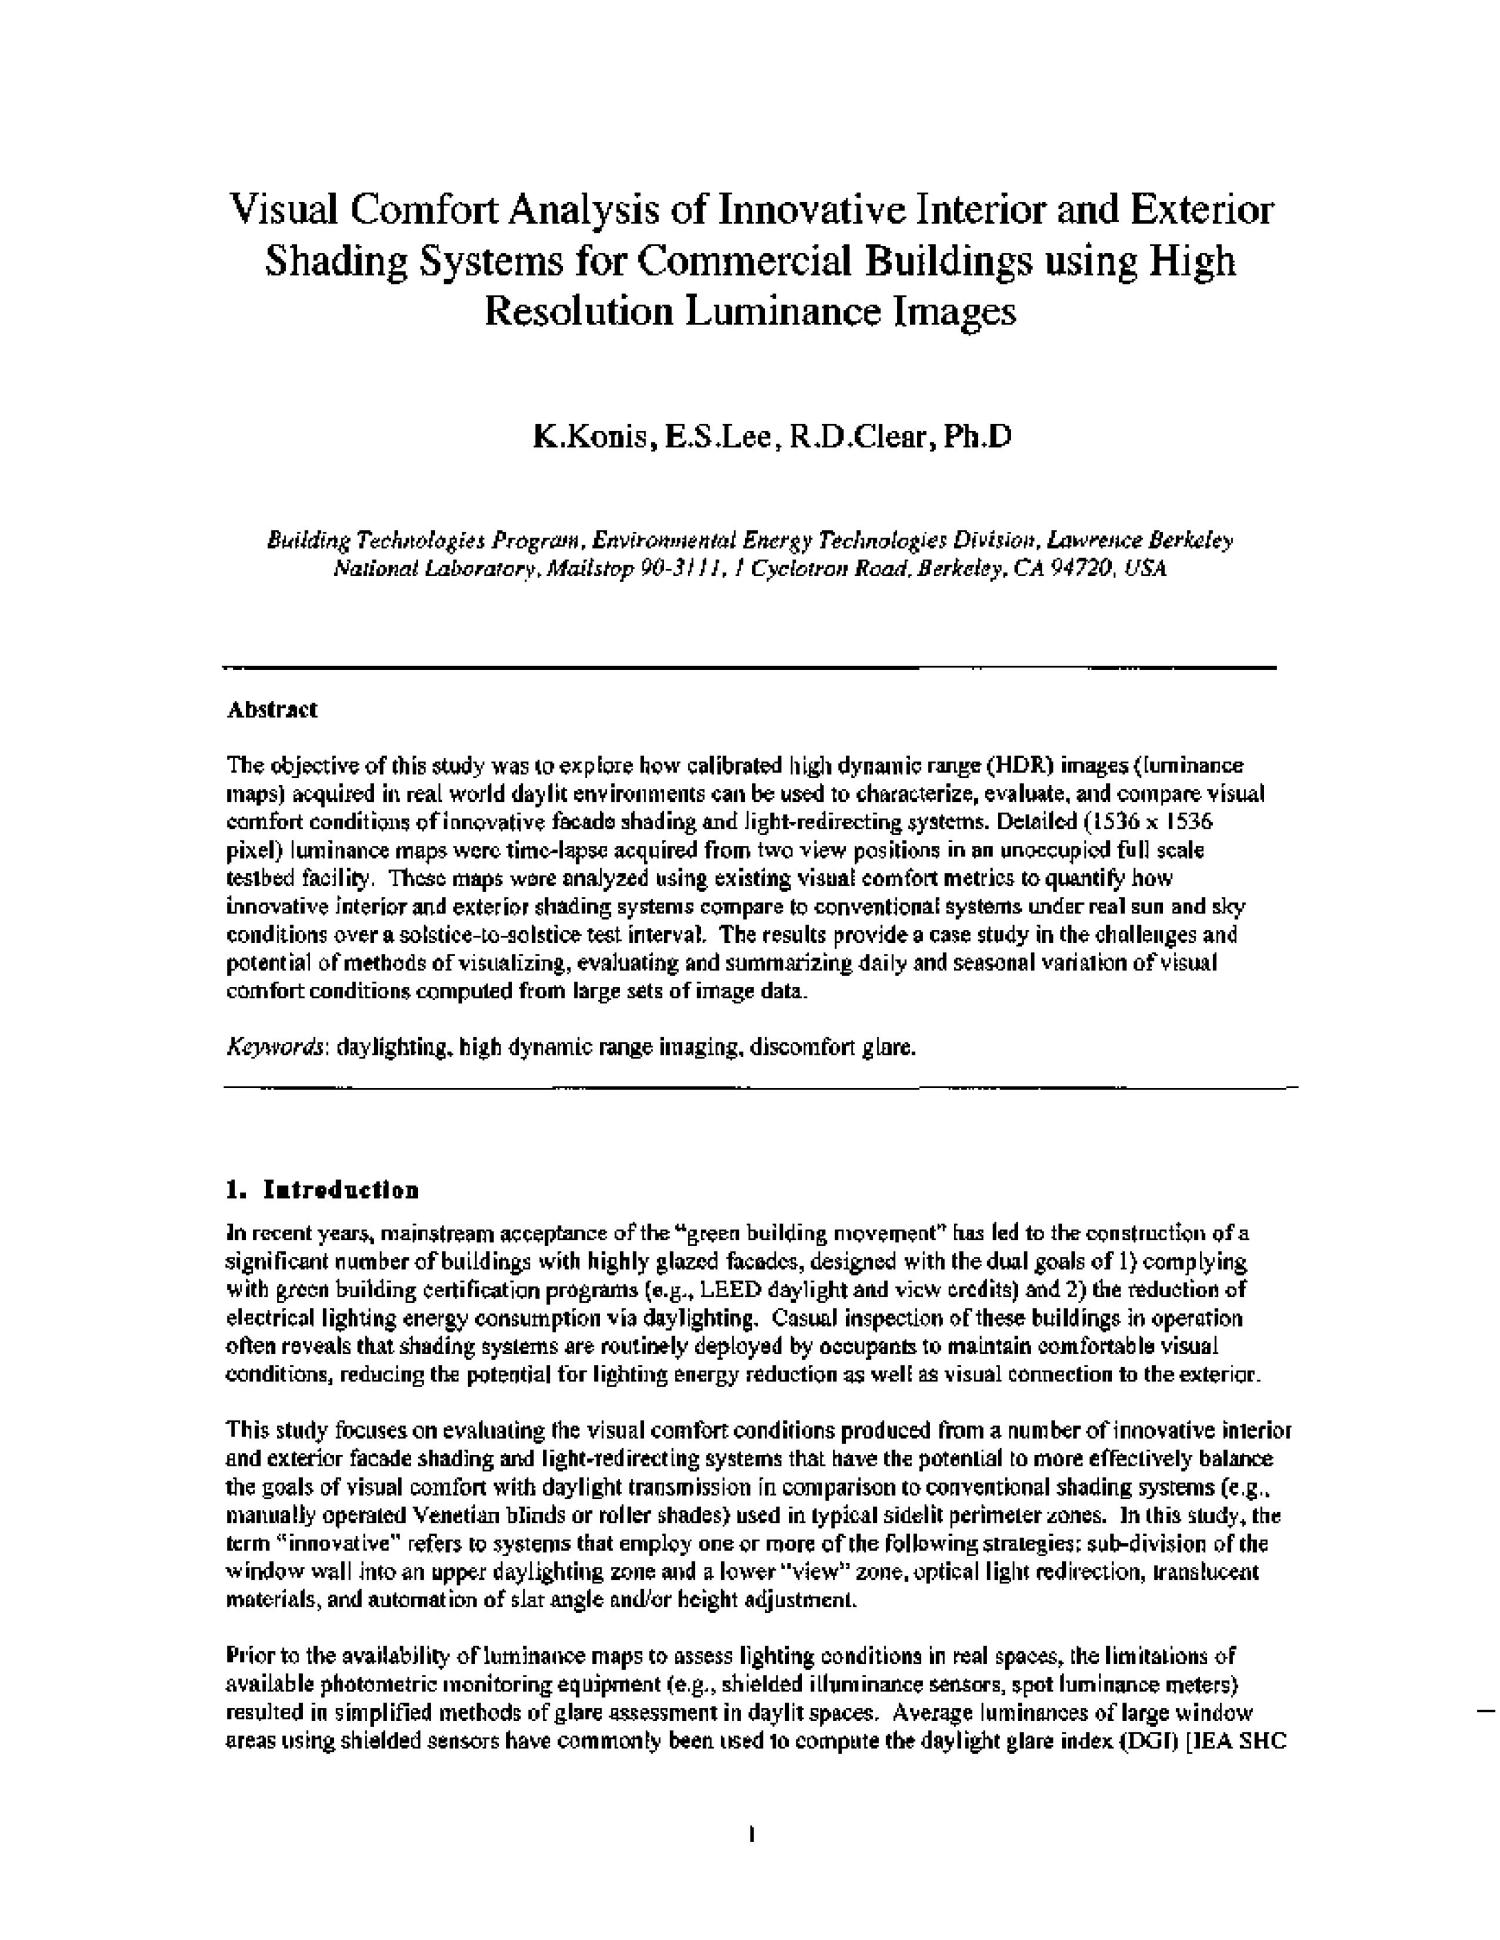 Visual Comfort Analysis of Innovative Interior and Exterior Shading Systems for Commercial Buildings using High Resolution Luminance Images                                                                                                      [Sequence #]: 3 of 26